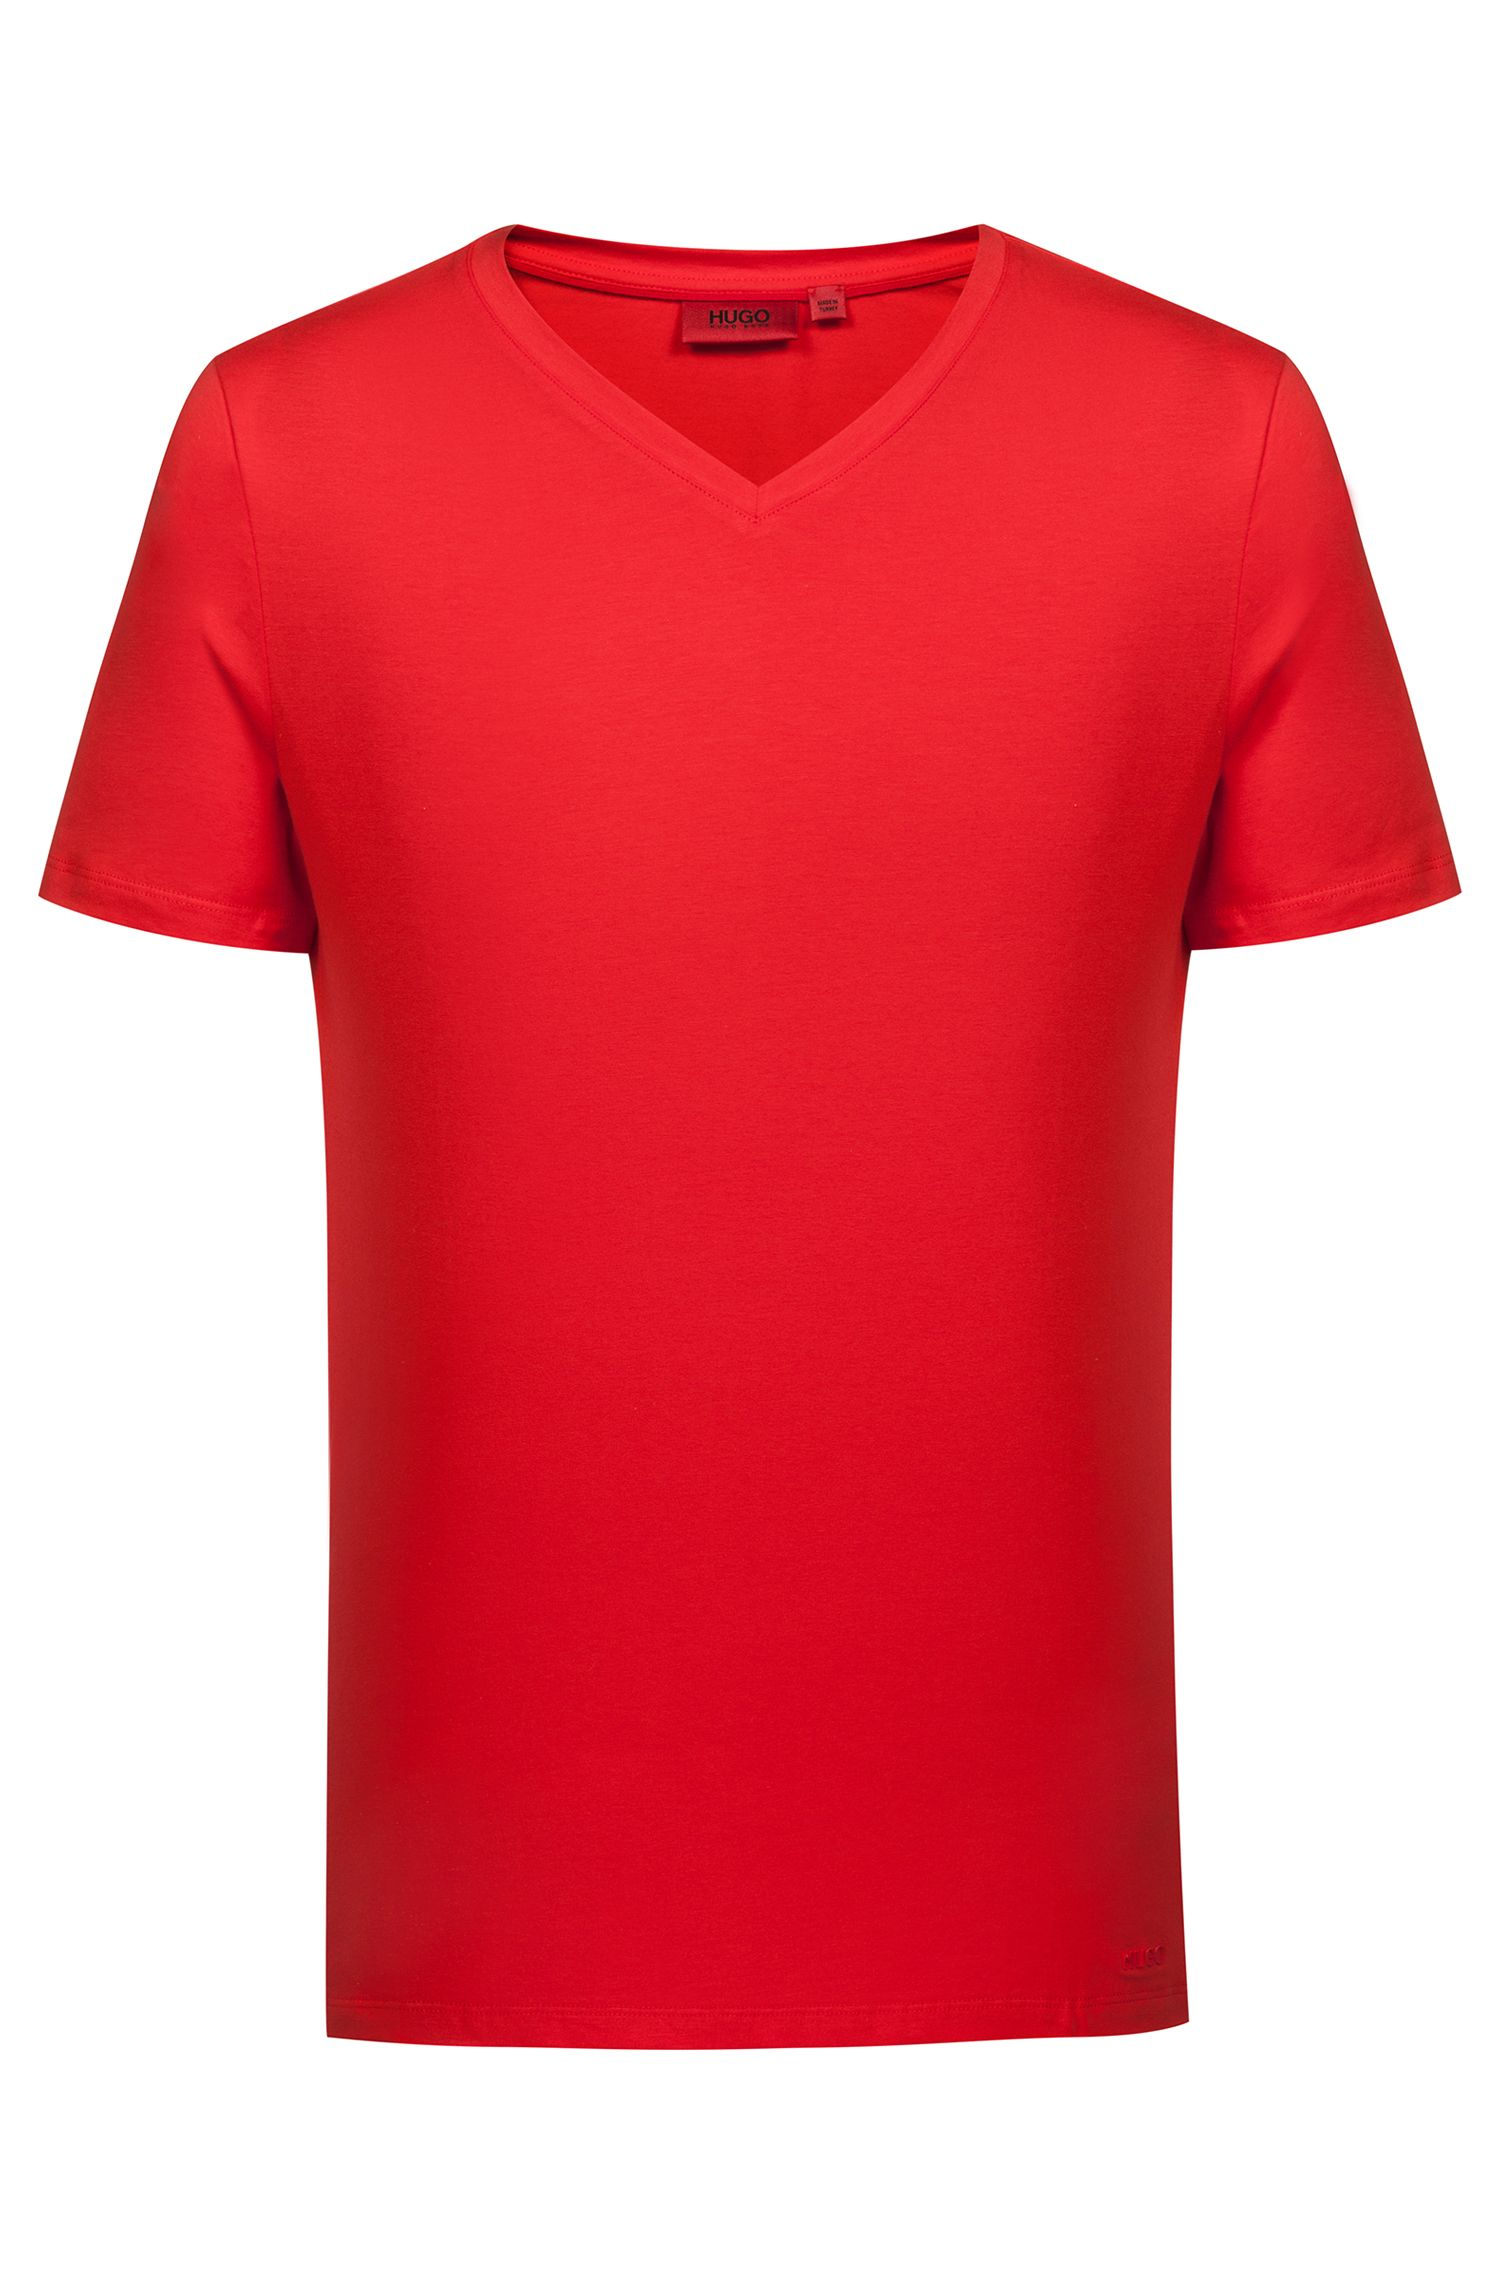 V-neck T-shirt in stretch cotton jersey, Red